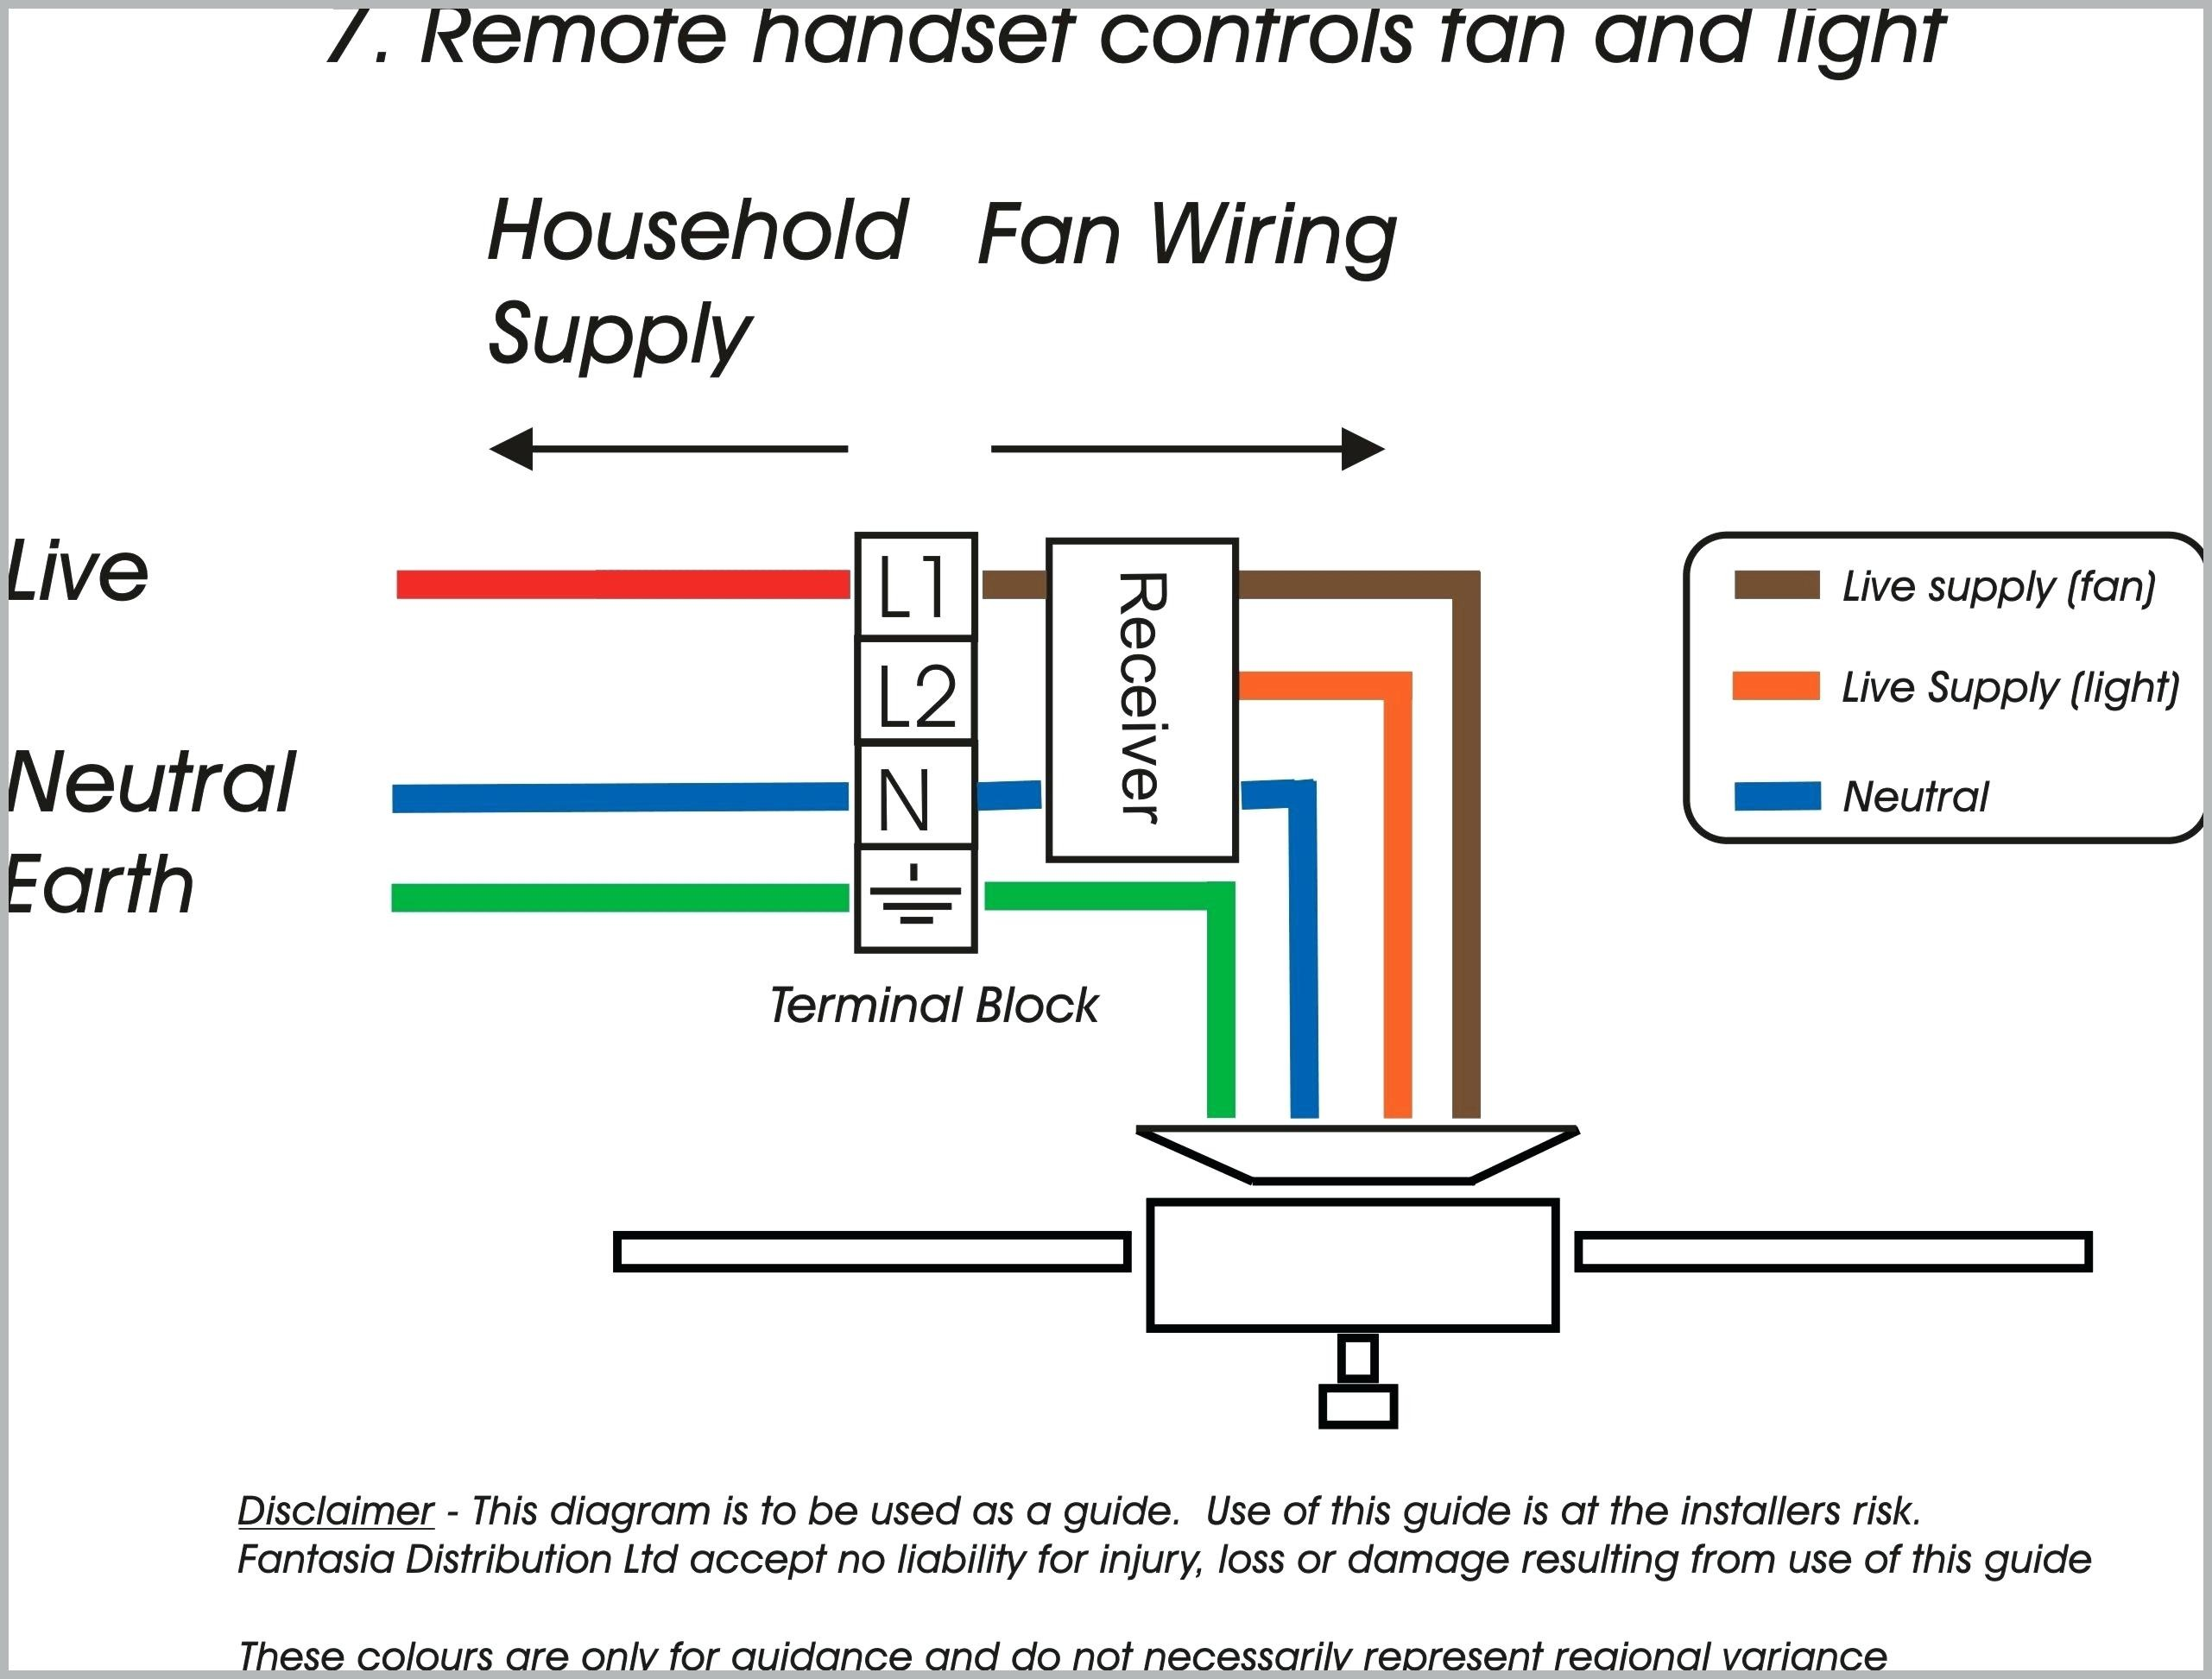 Ceiling Fan Wall Switch Wiring Diagram Wiring Diagram for Hunter Fan with Light Free Download Wiring Of Ceiling Fan Wall Switch Wiring Diagram